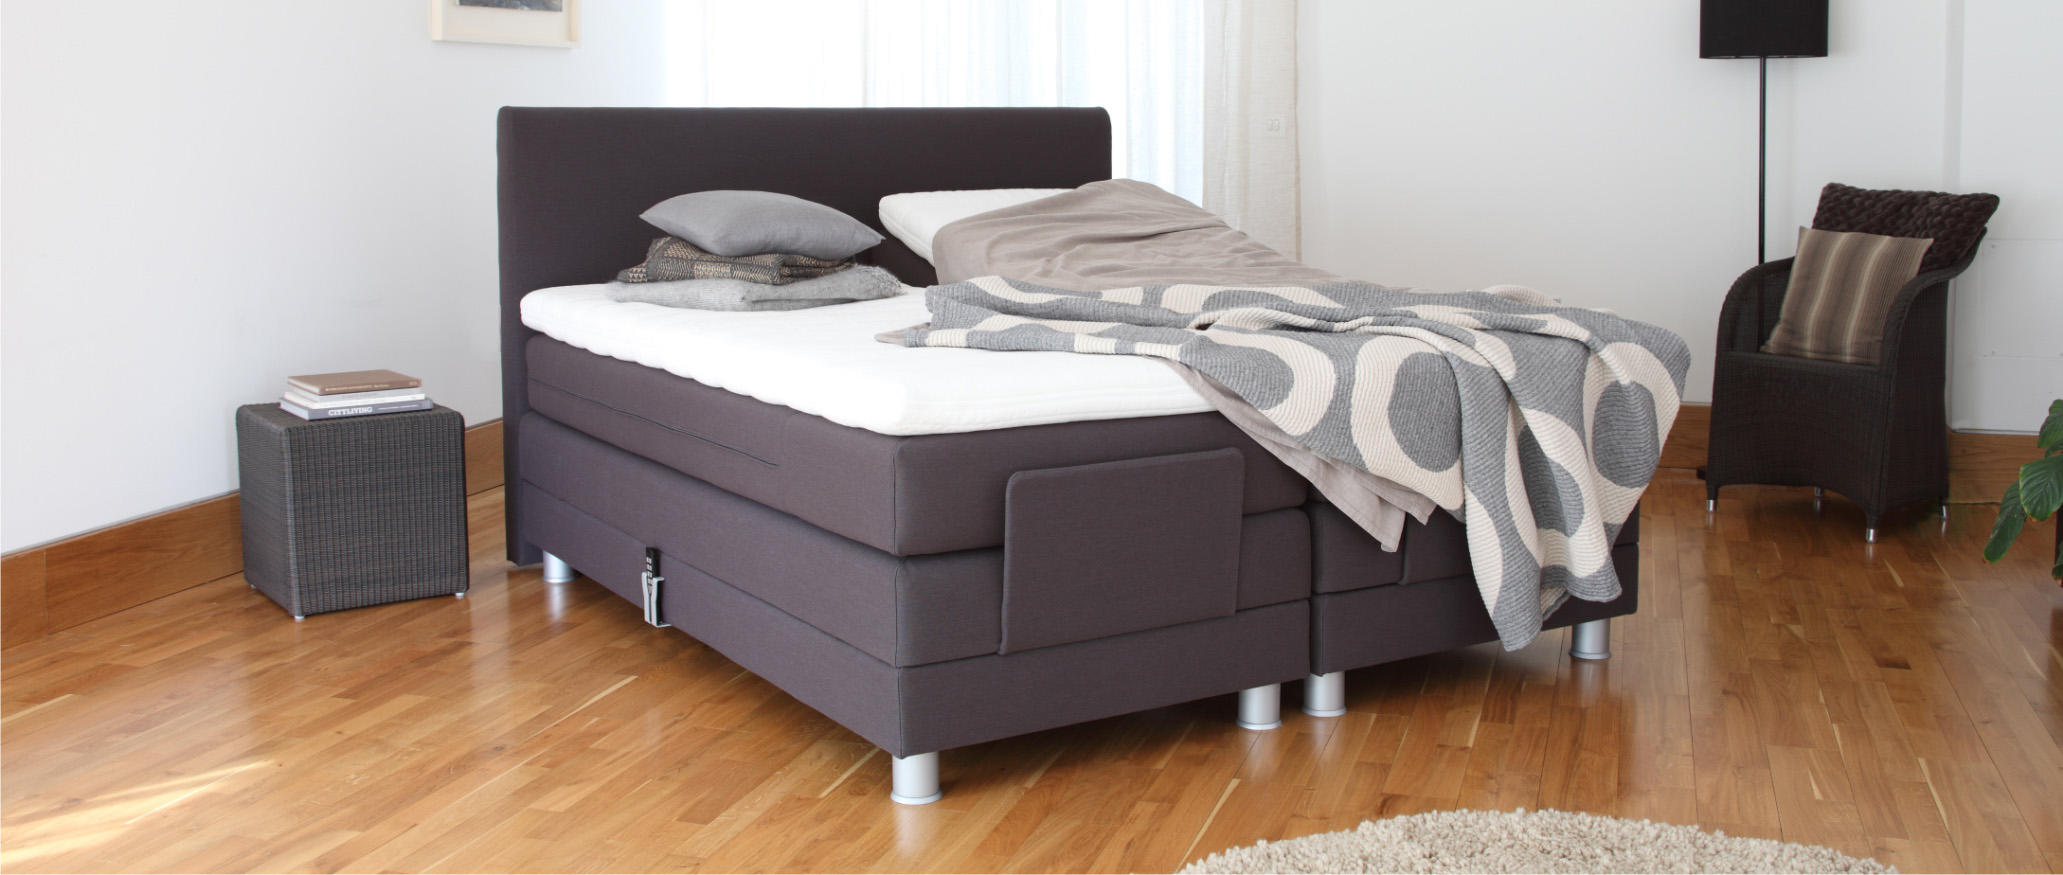 Adjustable Bed No Drawers With Grand Duchess Latex Mattress